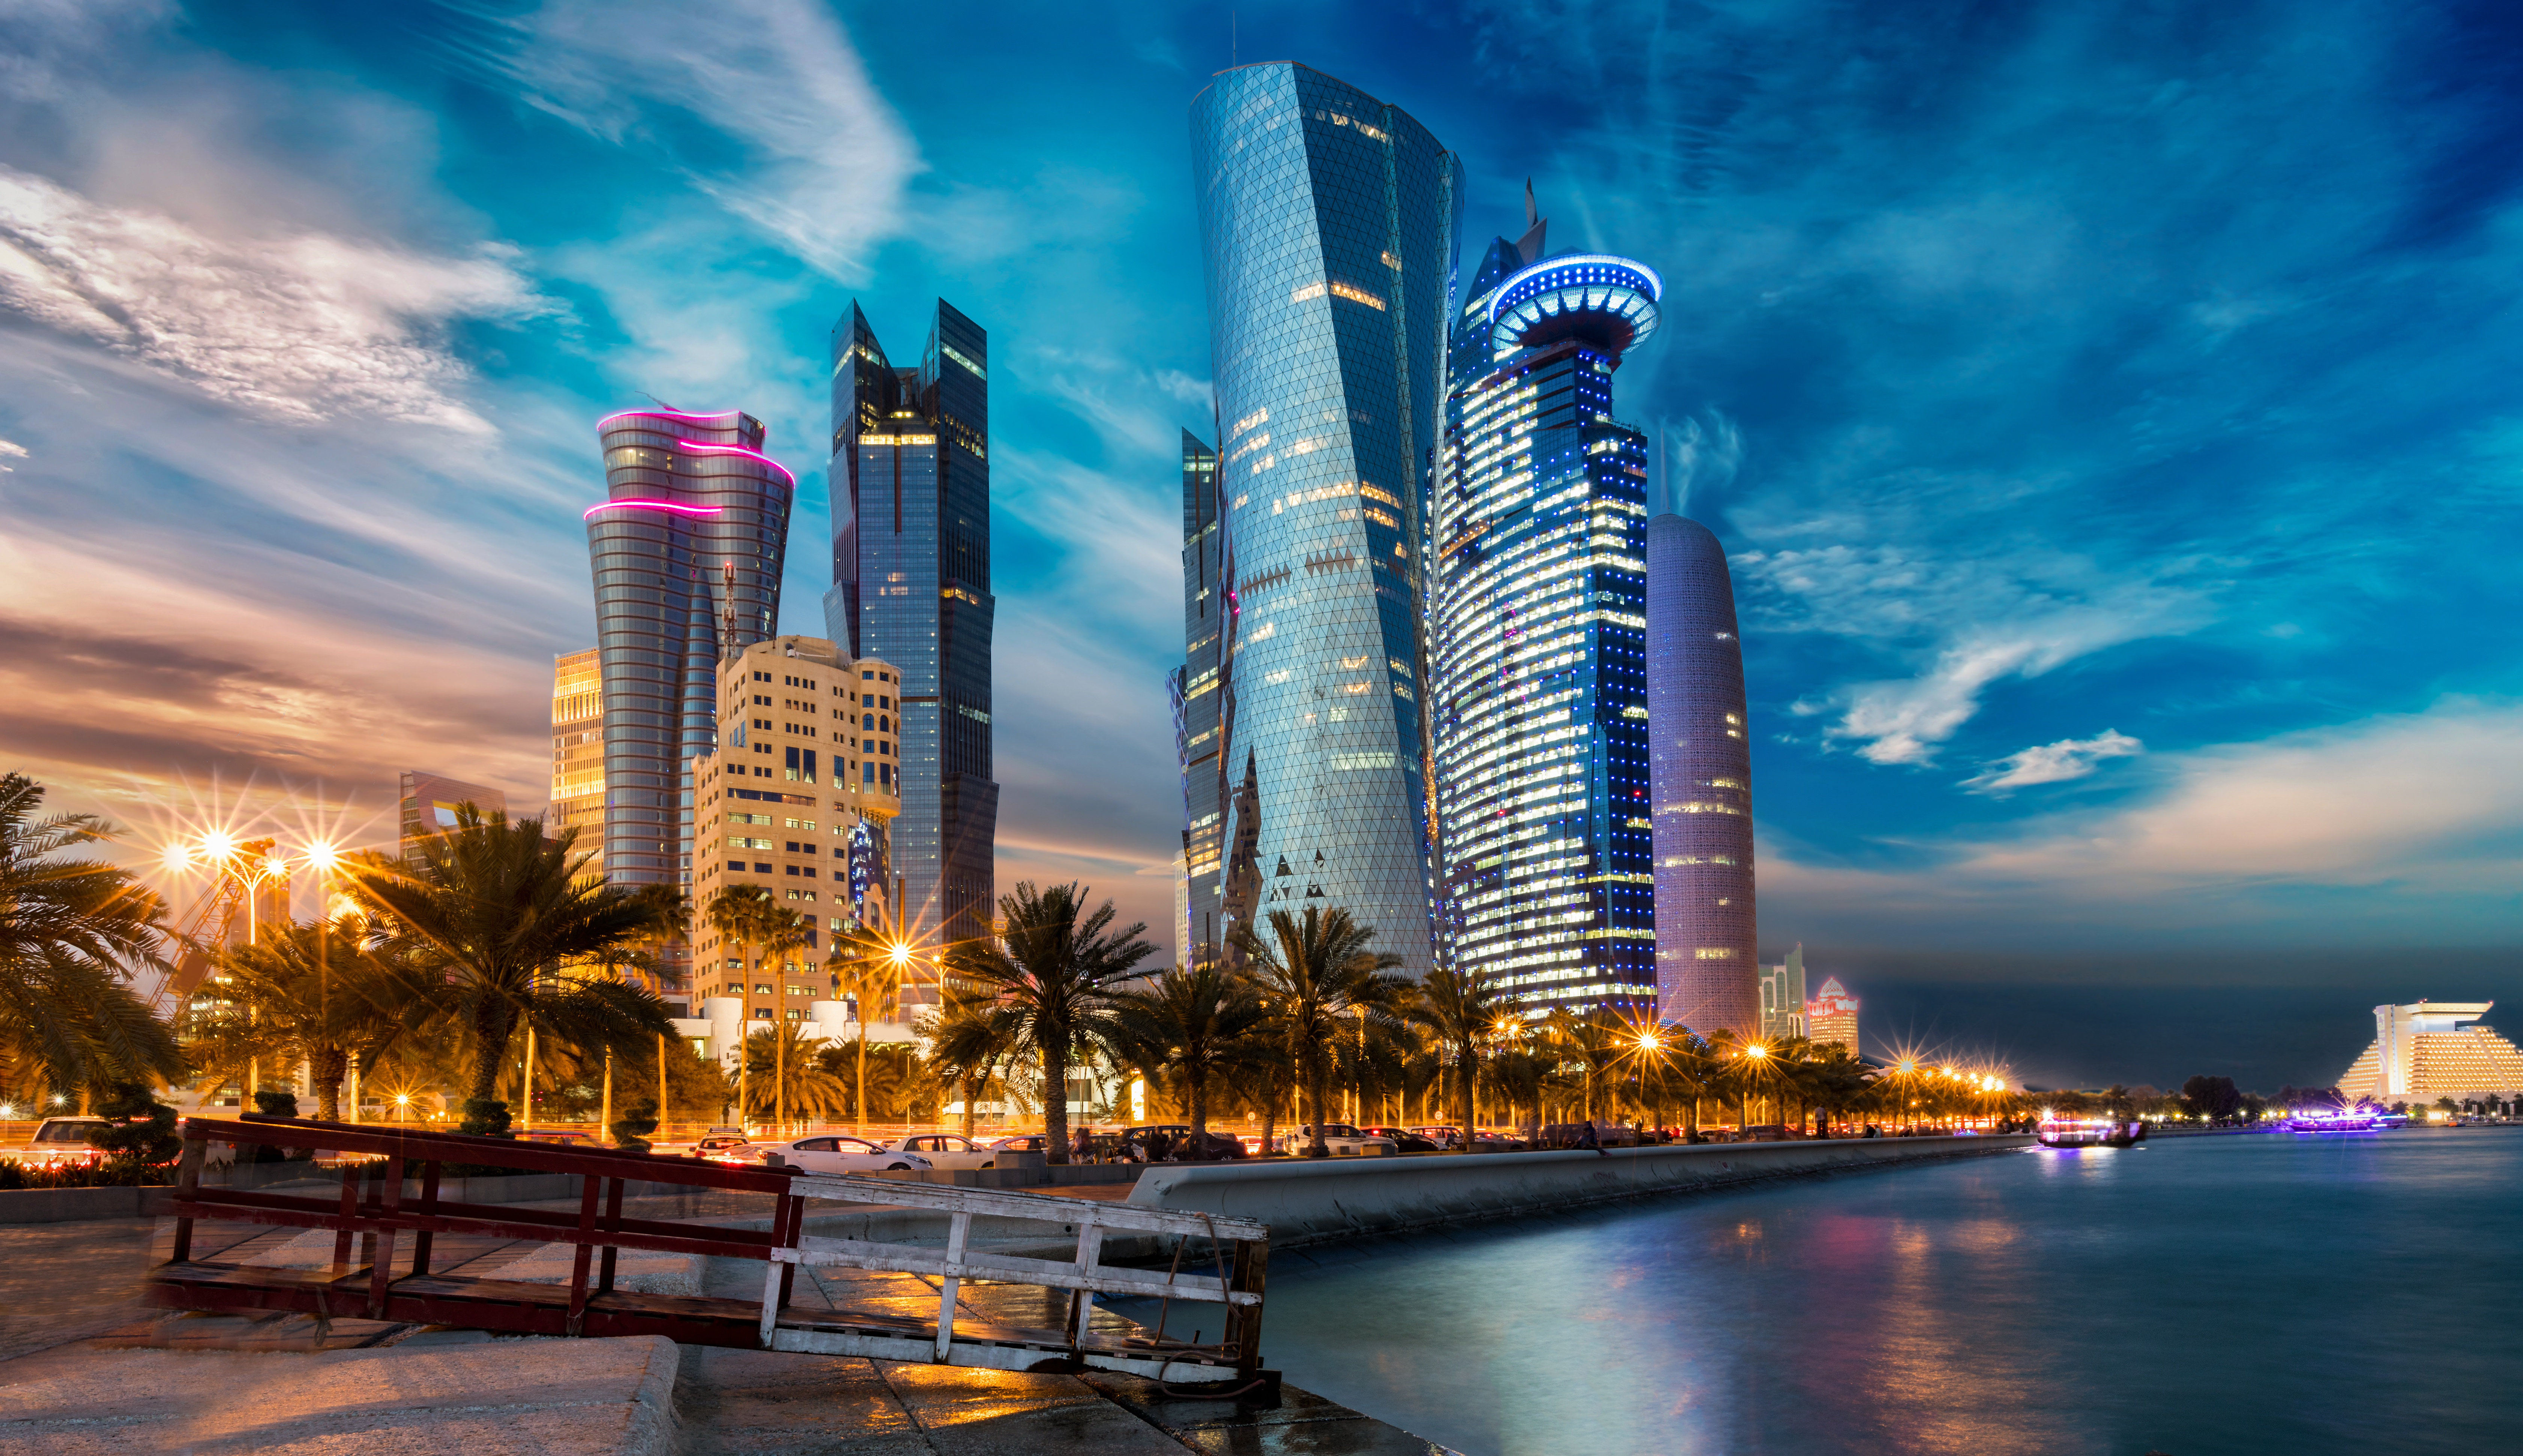 evening houses skyscrapers qatar 1596916623 - Evening Houses Skyscrapers Qatar - Evening Houses Skyscrapers Qatar wallpapers, Evening Houses Skyscrapers Qatar 4k wallpapers